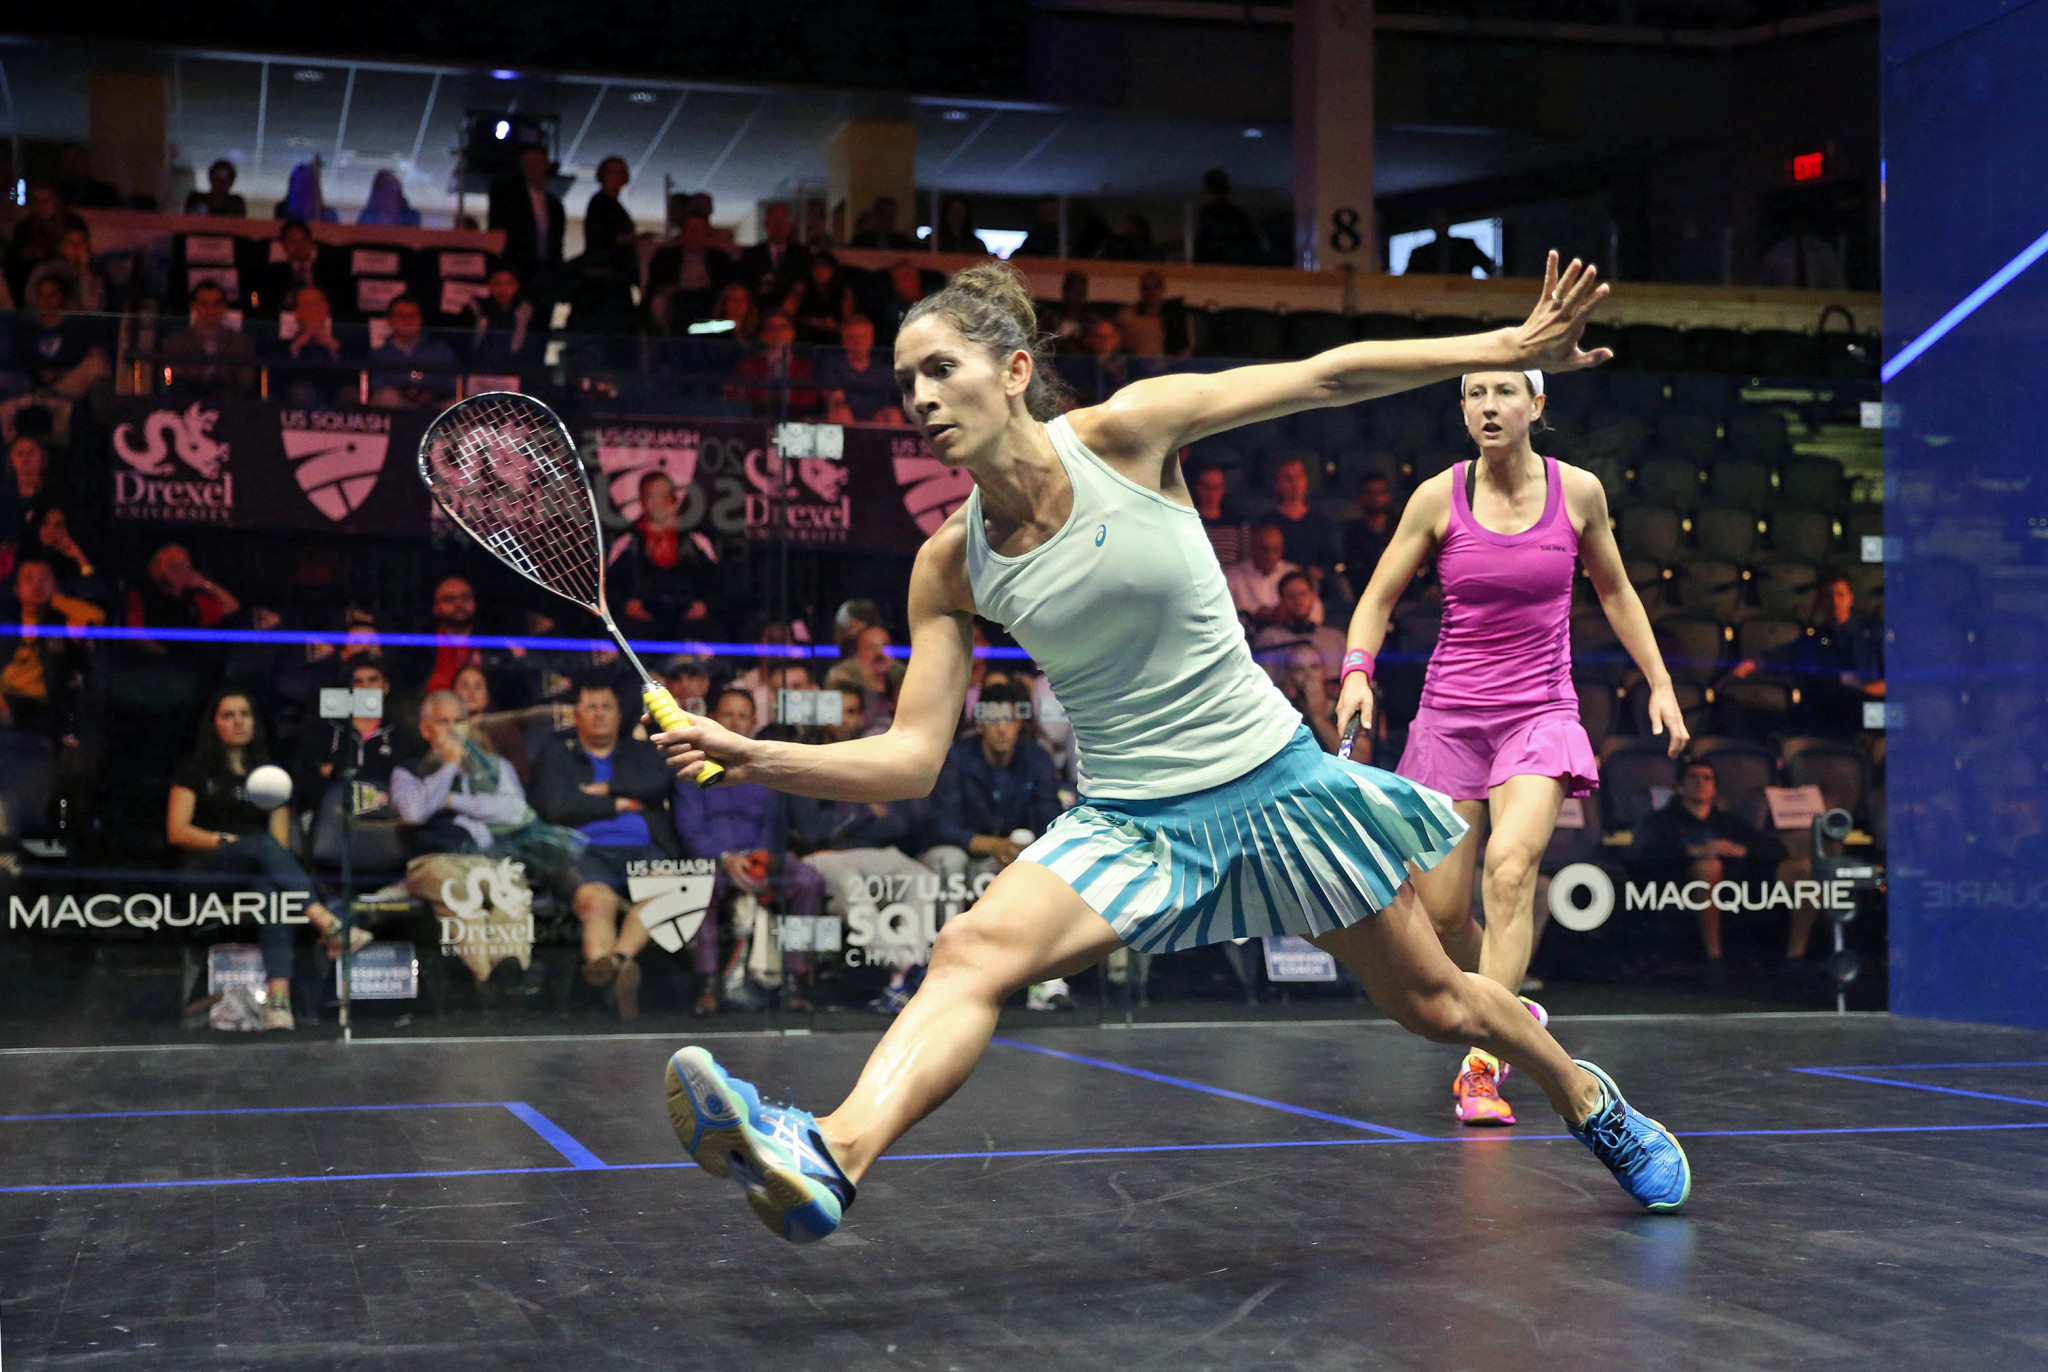 King through to PSA World Series tournament semi-finals for first time in over three years